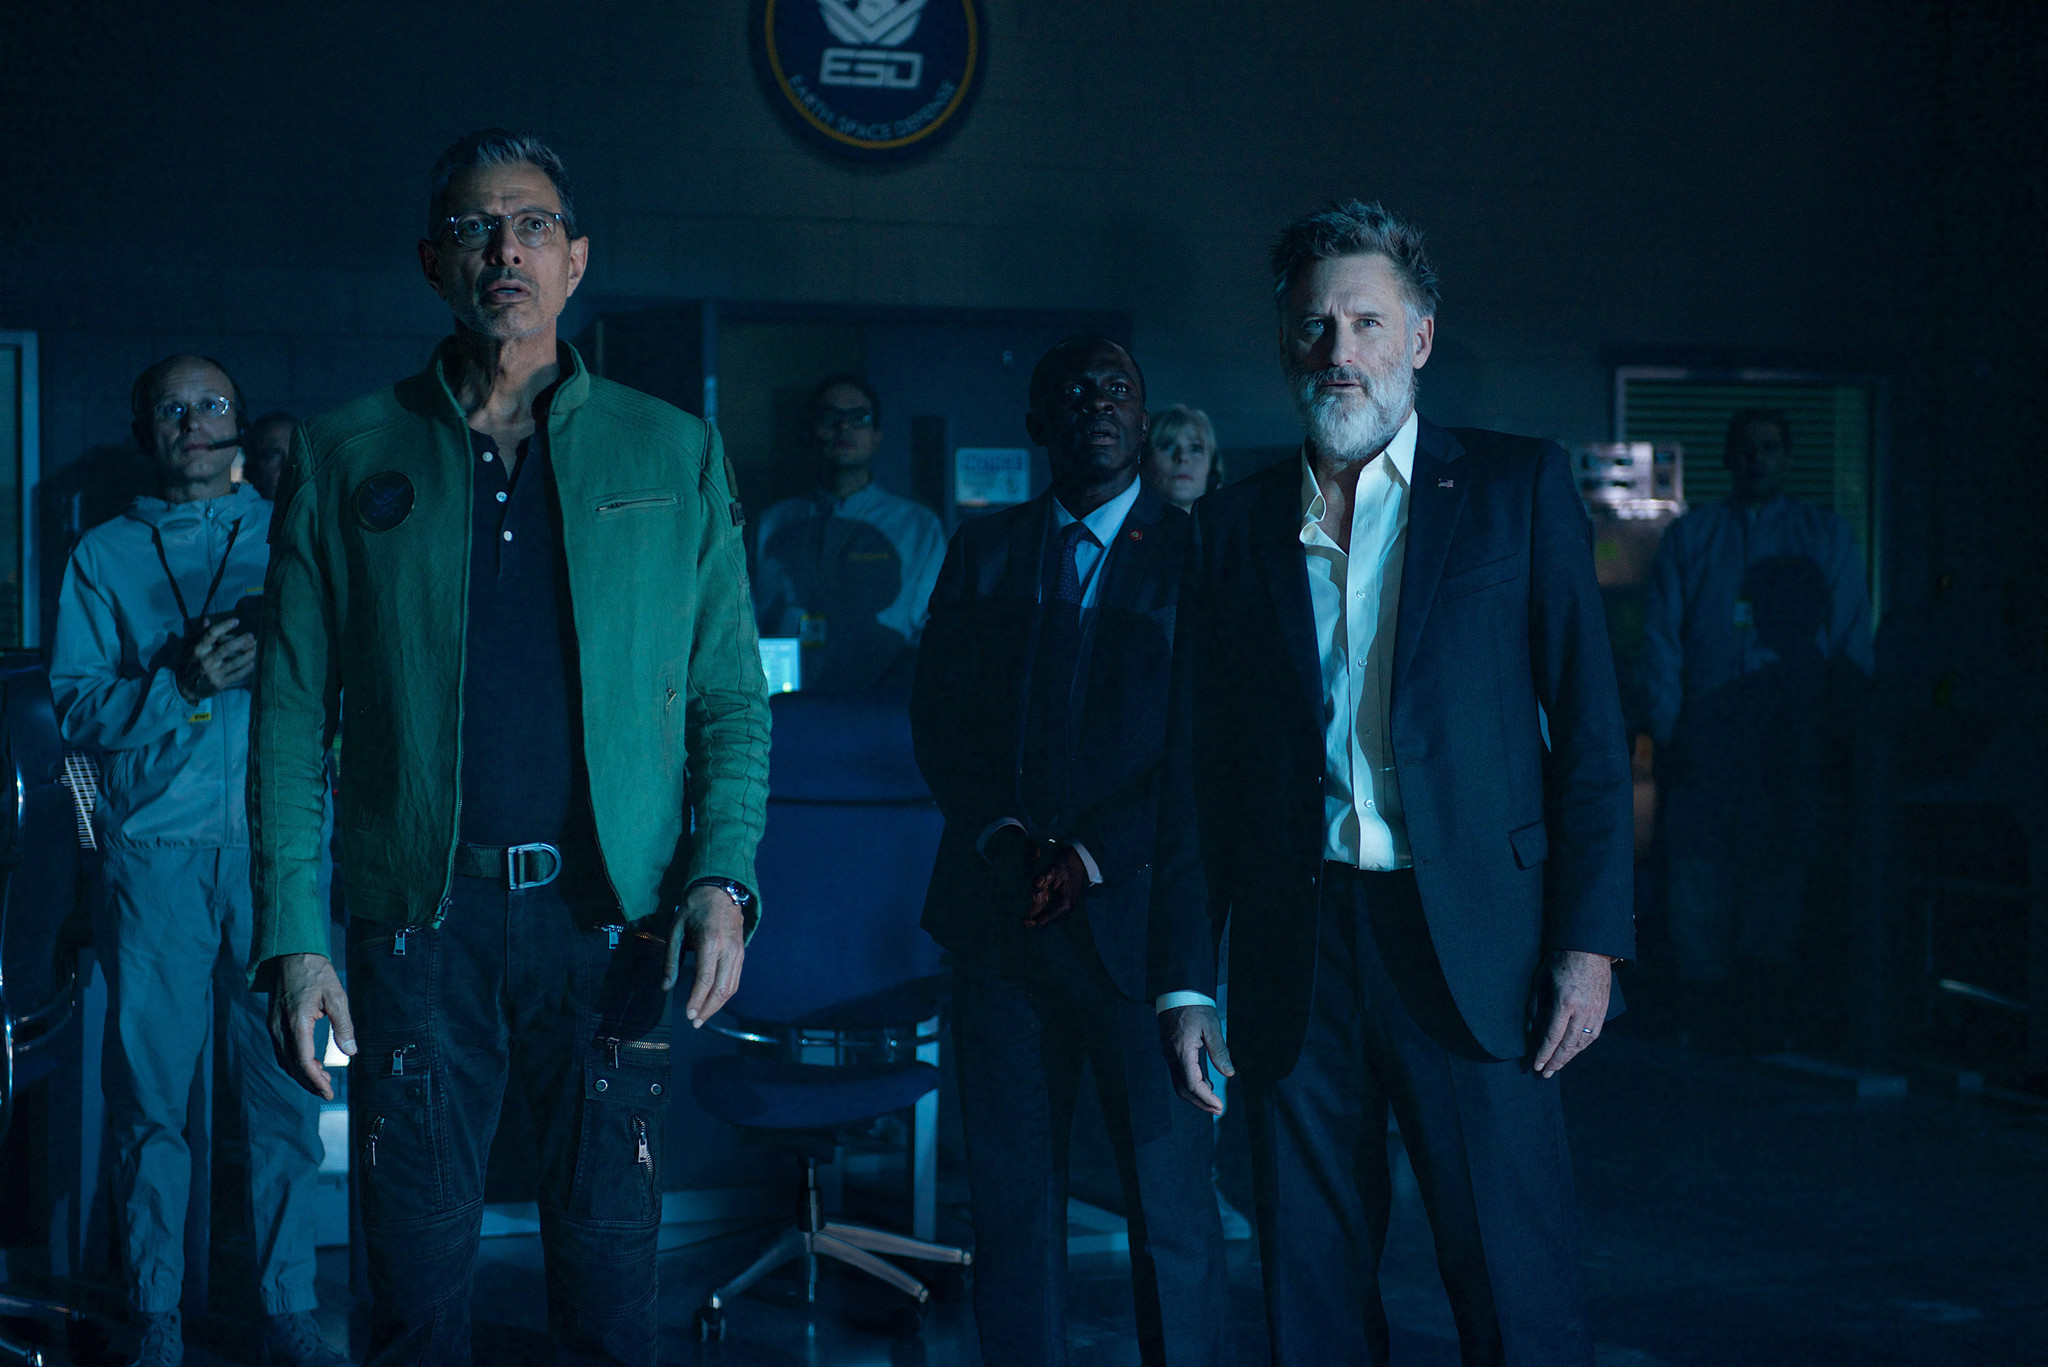 http://www.trbimg.com/img-576c1138/turbine/ct-independence-day-resurgence-review-20160623